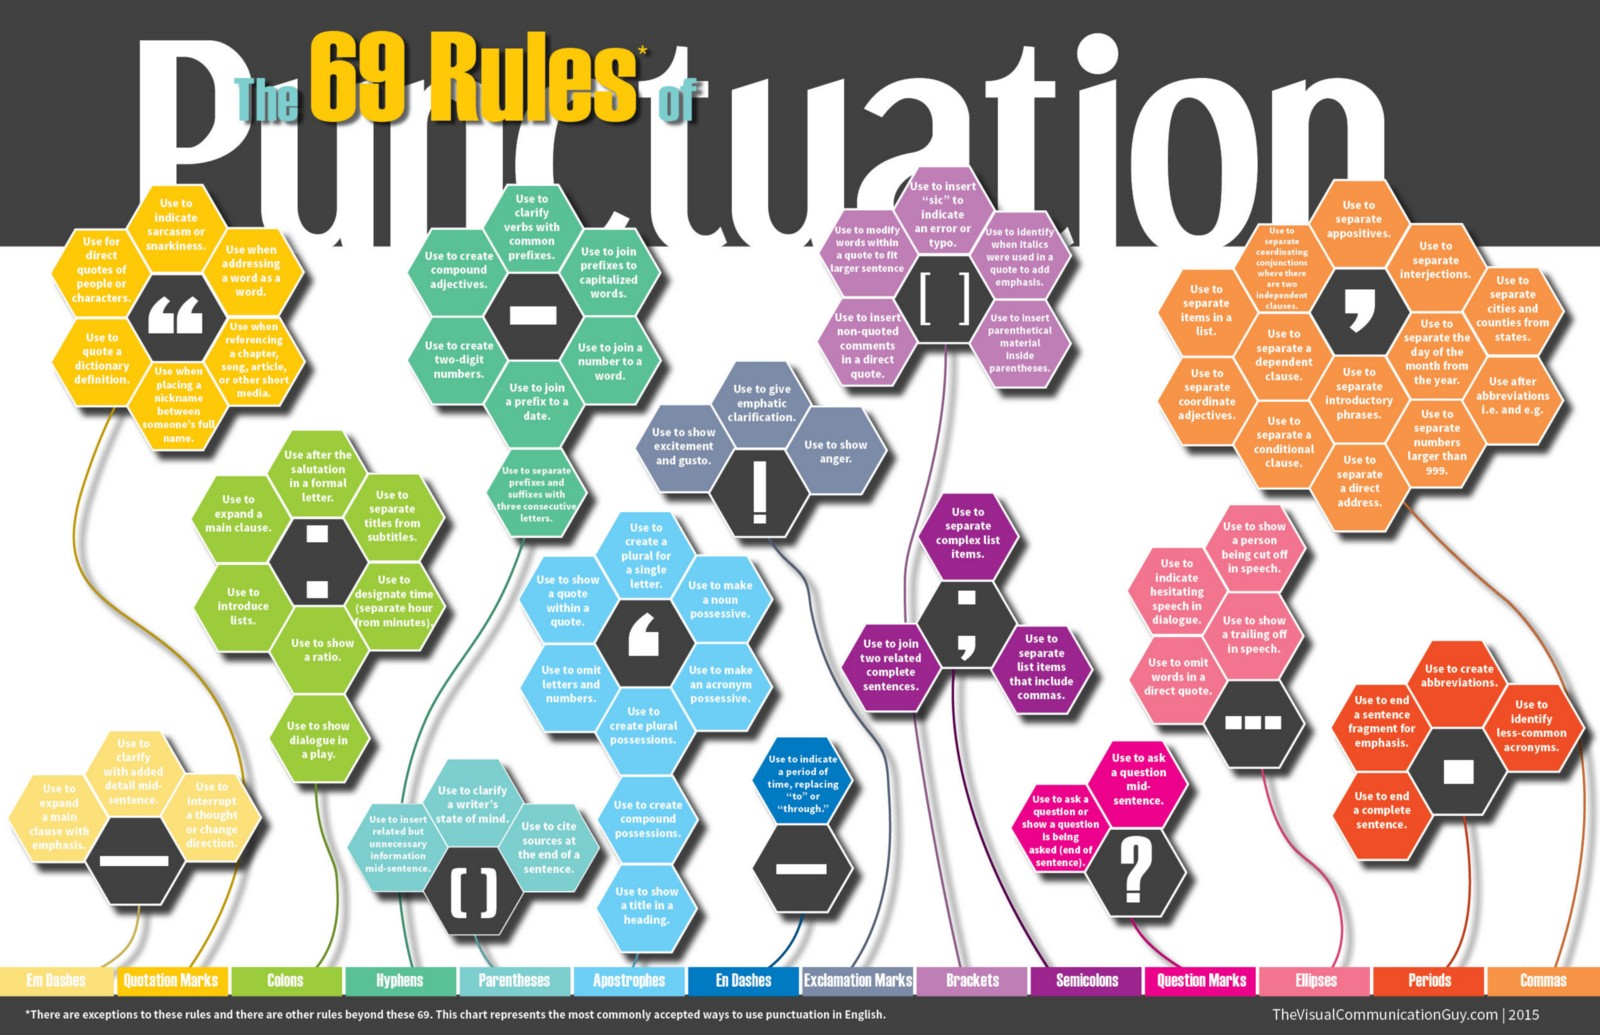 INFOGRAPHIC: The 69 Rules of Punctuation